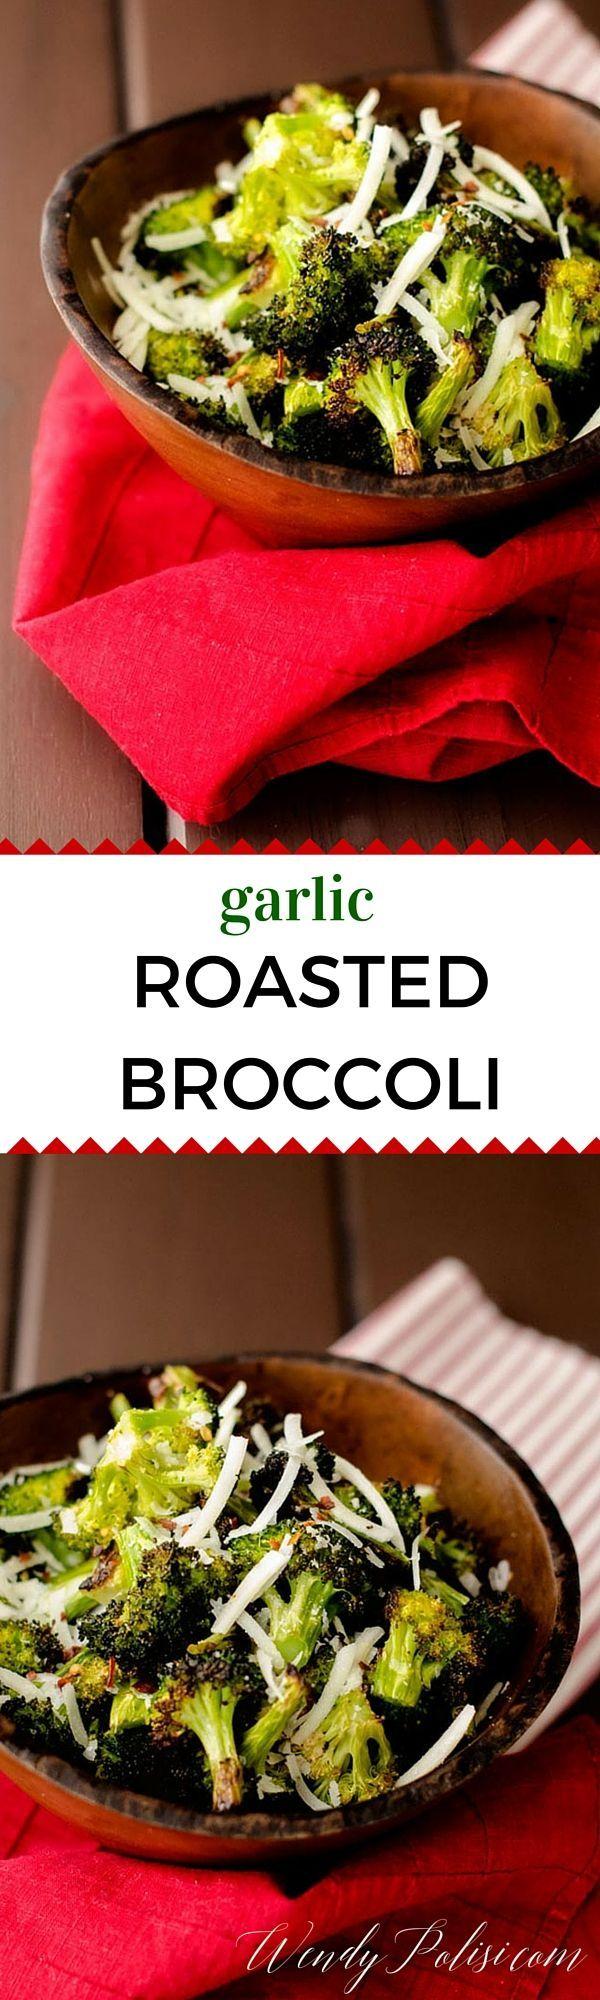 This Garlic Roasted Broccoli is an easy and delicious way to enjoy roasted broccoli.  This side dish is perfect when you are short on time. via @wendypolisi